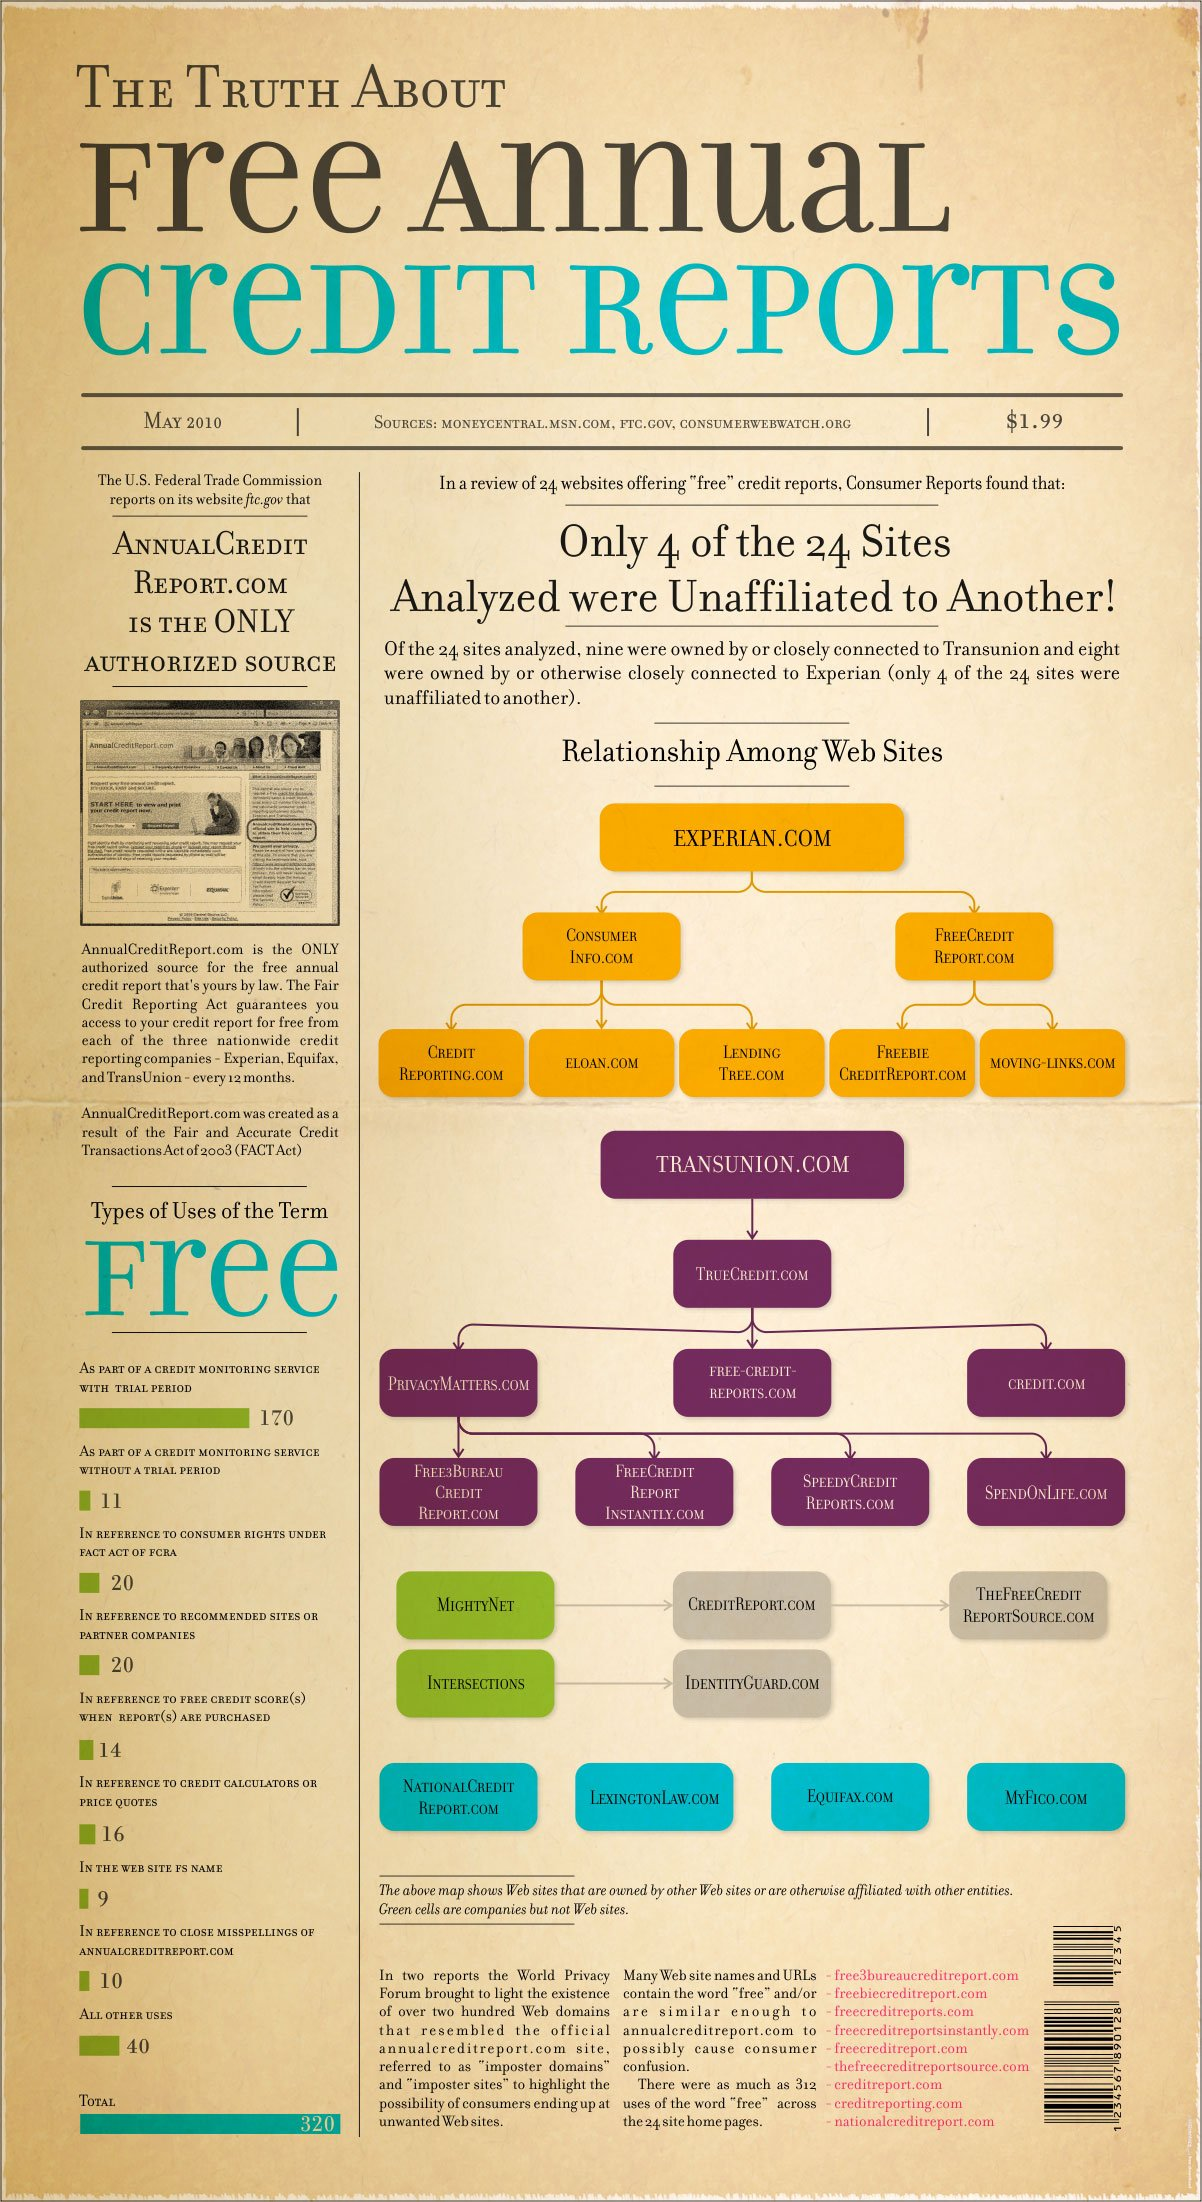 the_truth_about_free_annual_credit_reports